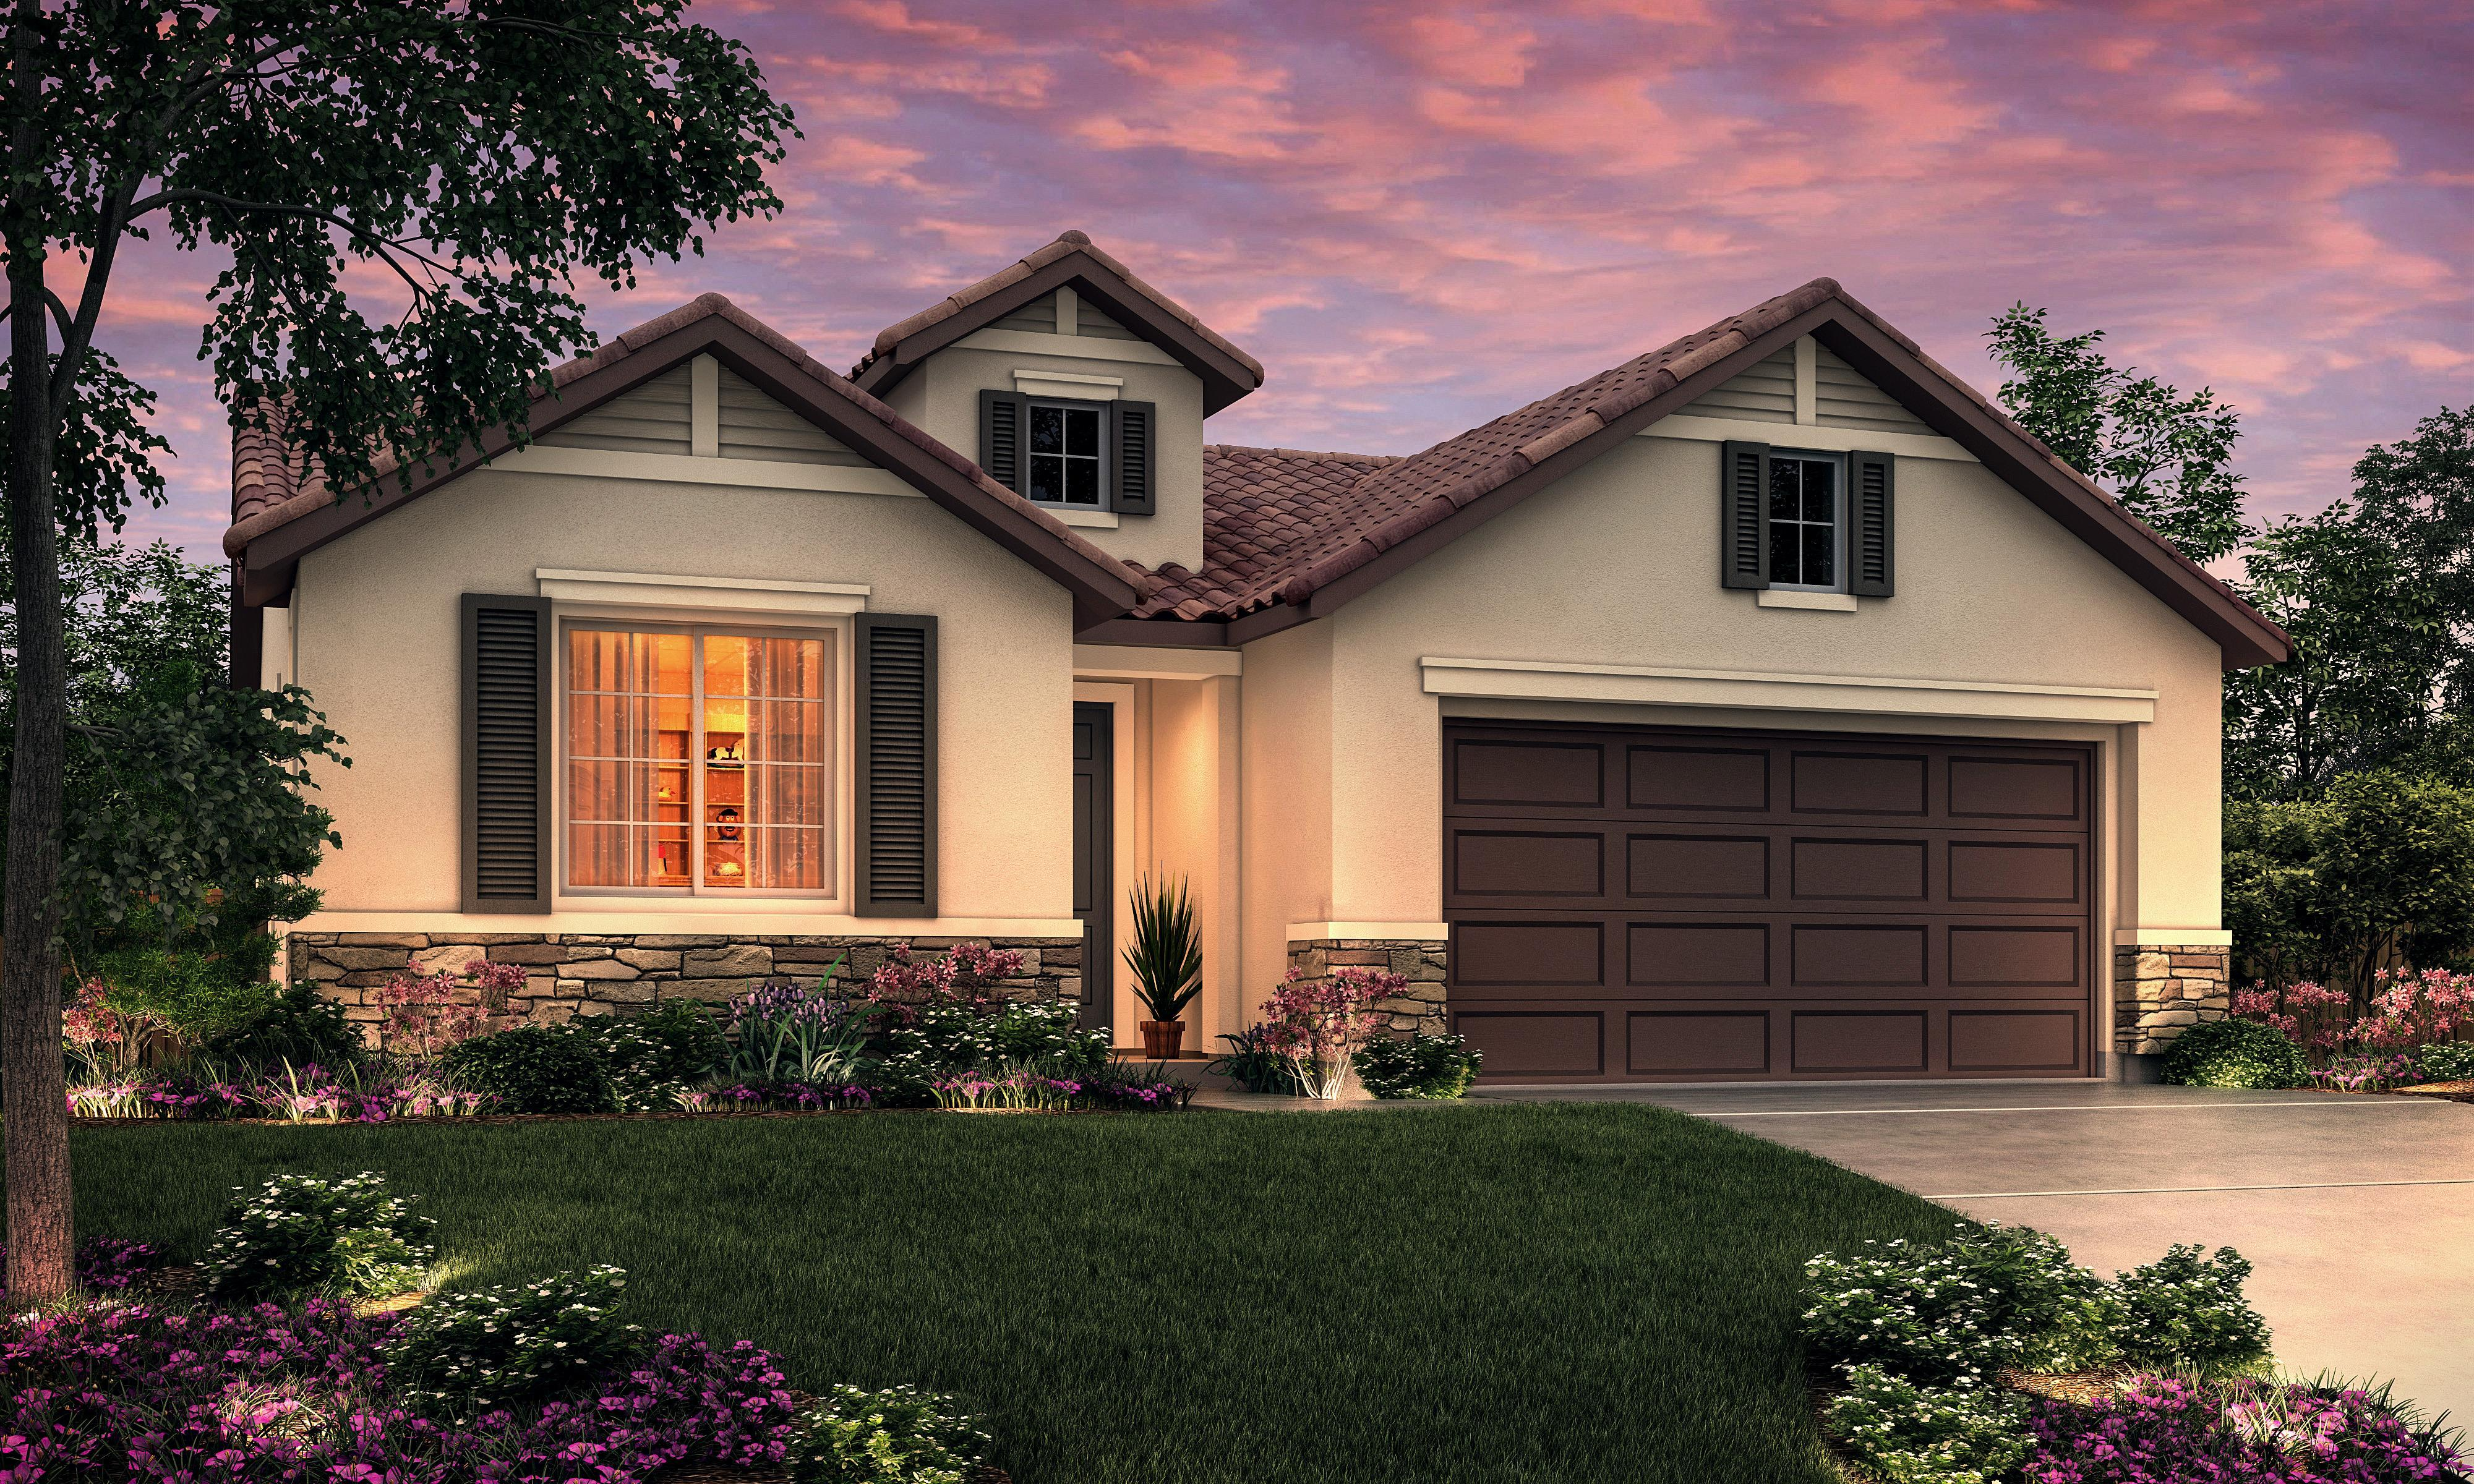 'The Villas' by Stonefield Home in Merced